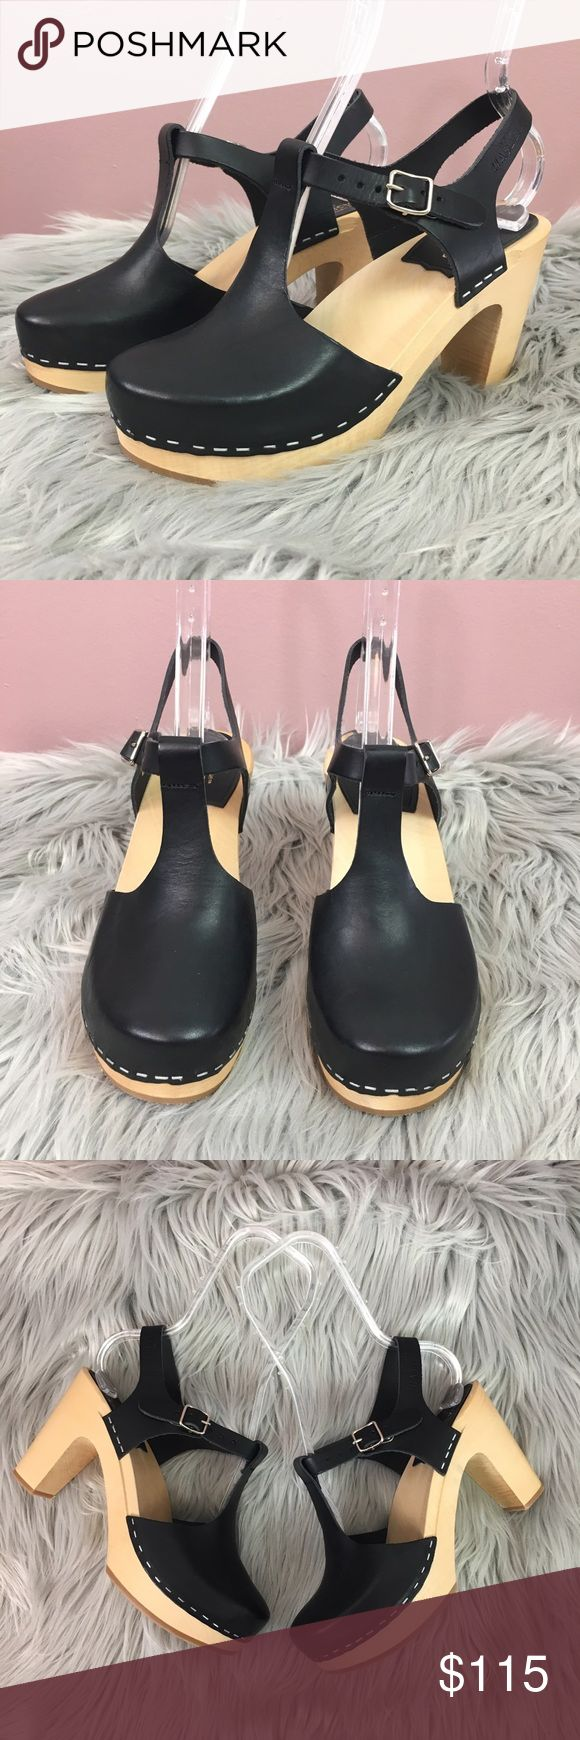 NEW Swedish Hasbeens Leather Heeled Clogs Brand new never worn. Brand marked to prevent in store returns. Euro Size 37 Swedish Hasbeens Shoes Heels